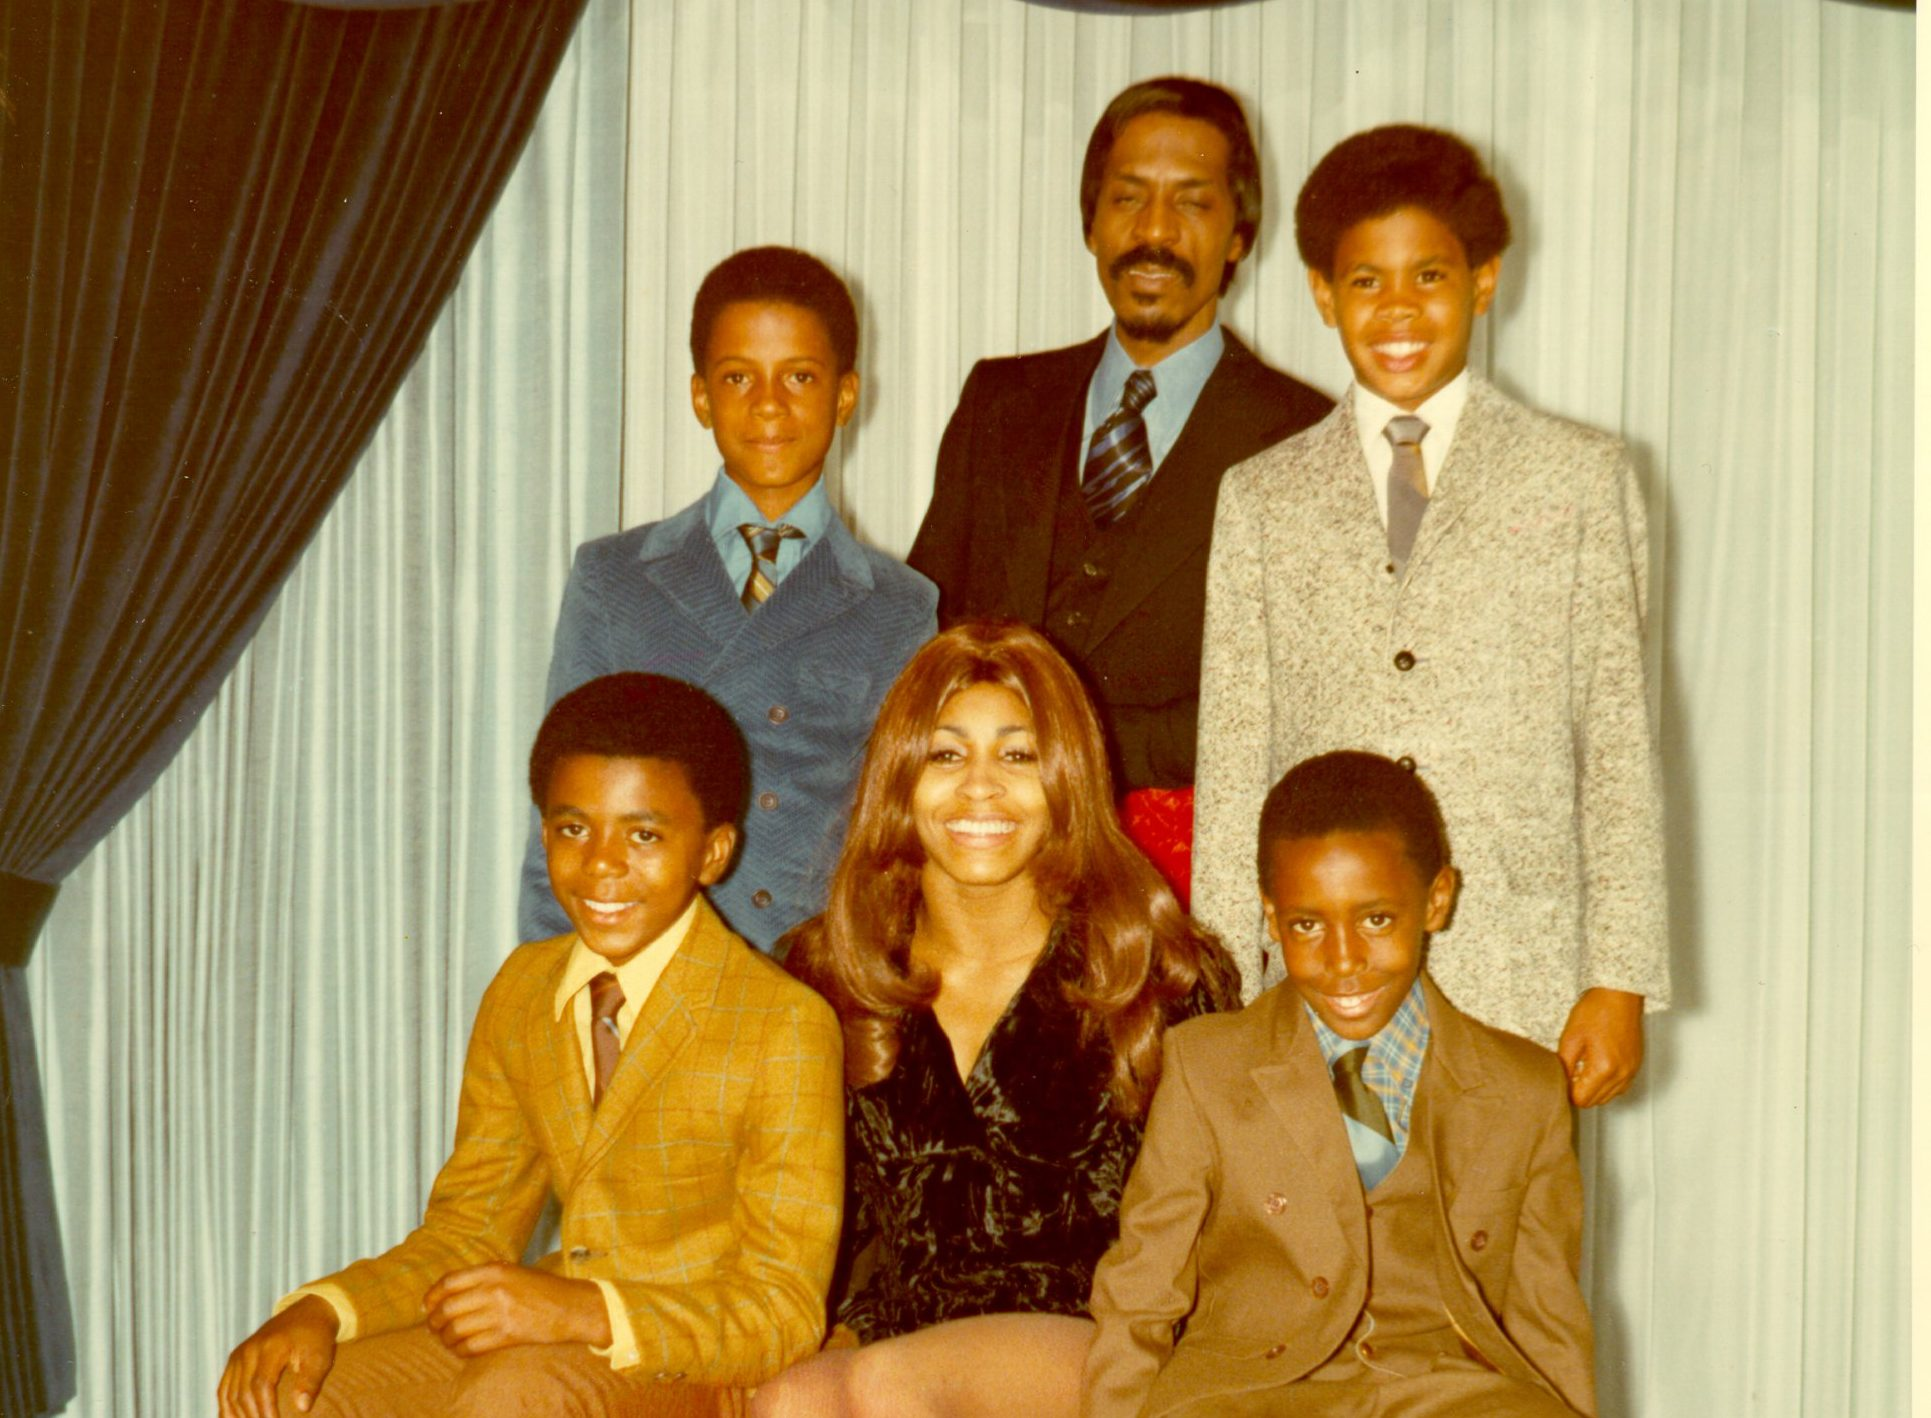 CIRCA 1972: Ike & Tina Turner pose for a portrait with their son and step-sons in circa 1972. Clockwise from bottom left: Michael Turner (Son of Ike & Lorraine Taylor), Ike Turner, Jr. (Son of Ike & Lorraine Taylor), Ike Turner, Craig Hill (Son of Tina & Raymond Hill), Ronnie Turner (Son of Ike & Tina). (Photo by Michael Ochs Archives/Getty Images)